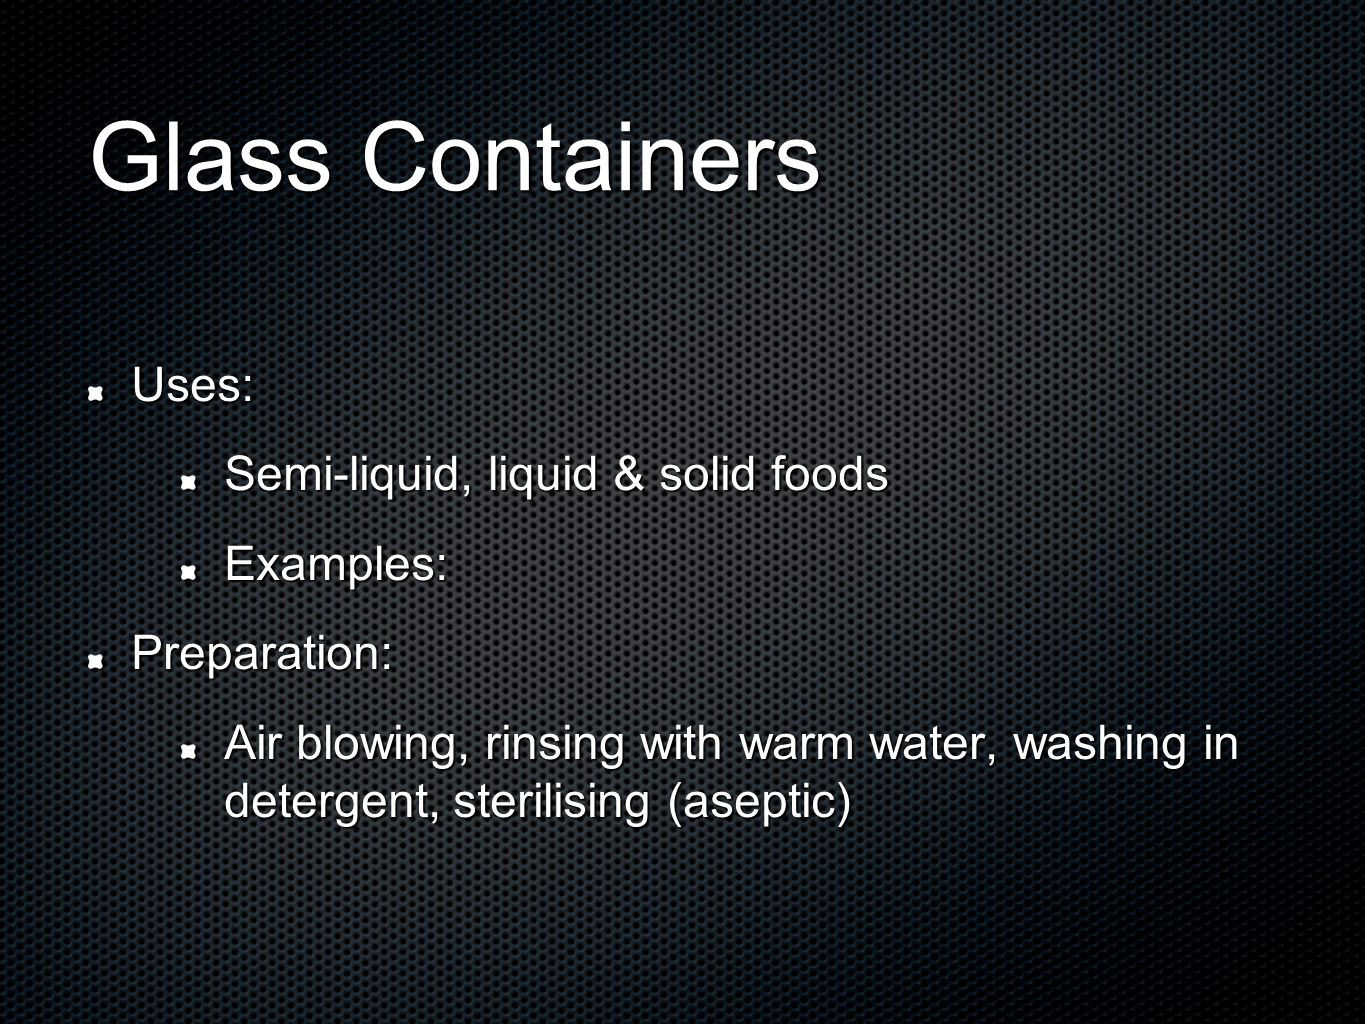 Glass Containers Uses: Semi-liquid, liquid & solid foods Examples:Preparation: Air blowing, rinsing with warm water, washing in detergent, sterilising